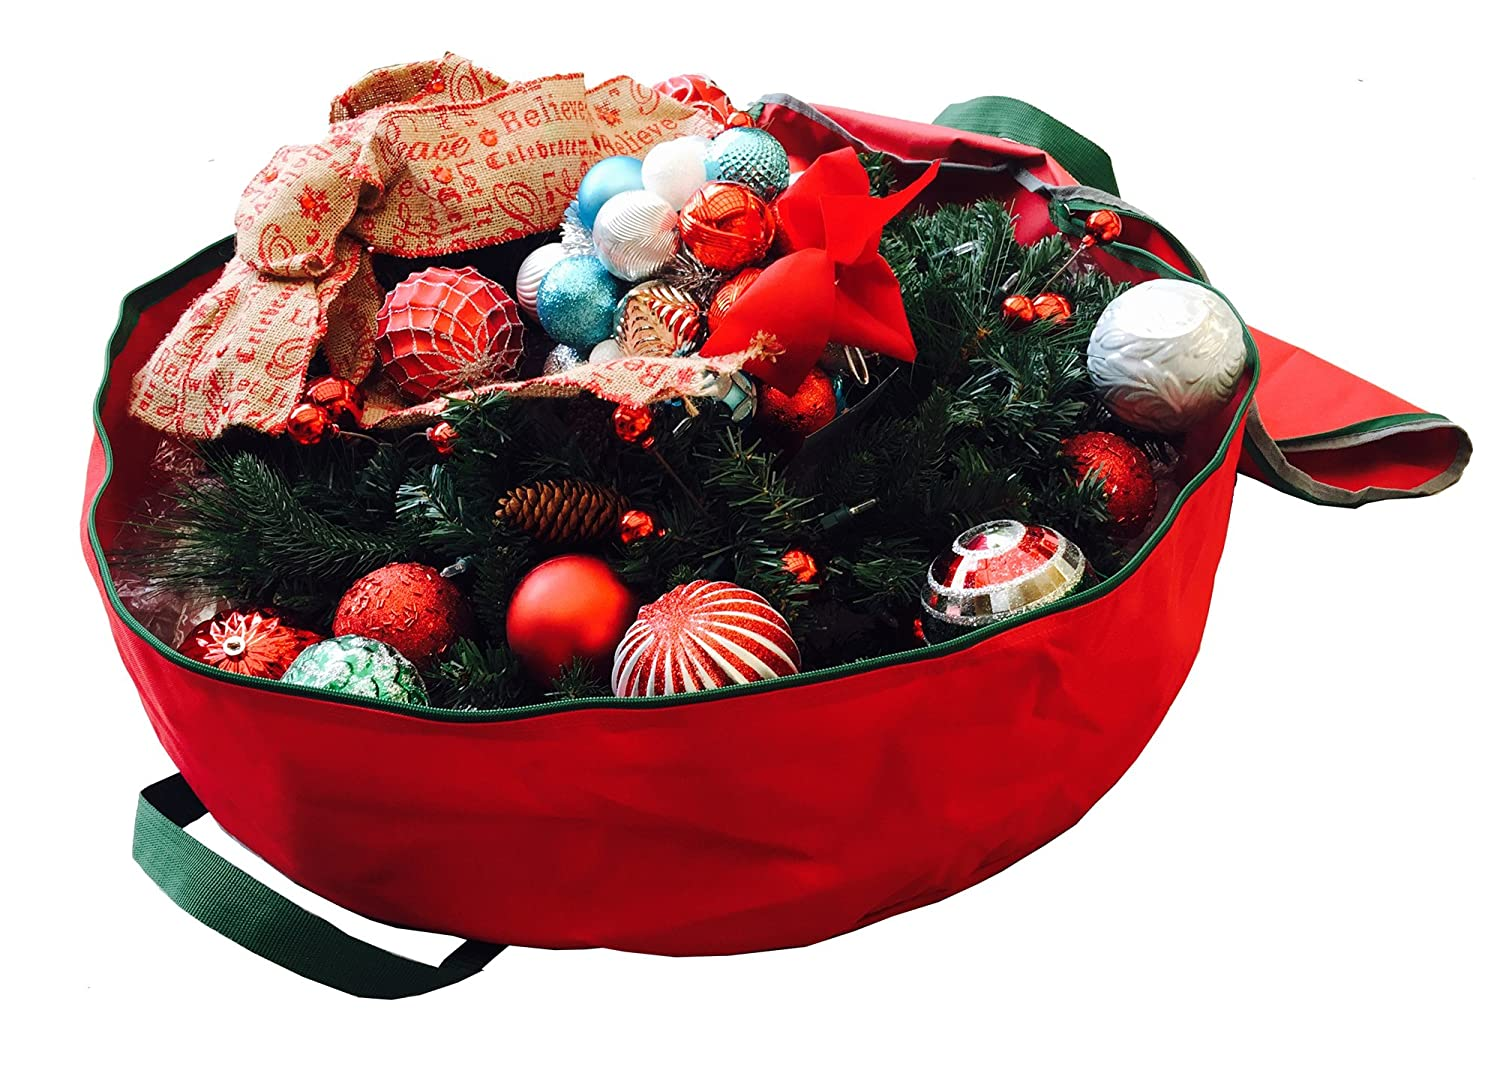 K-Cliffs Wreath Storage Bag Heavy Duty Round 30 Inch Premium Holiday Christmas Garland Bag Strong Quality Xmas Wreaths Ornaments Storage Bags Red 30